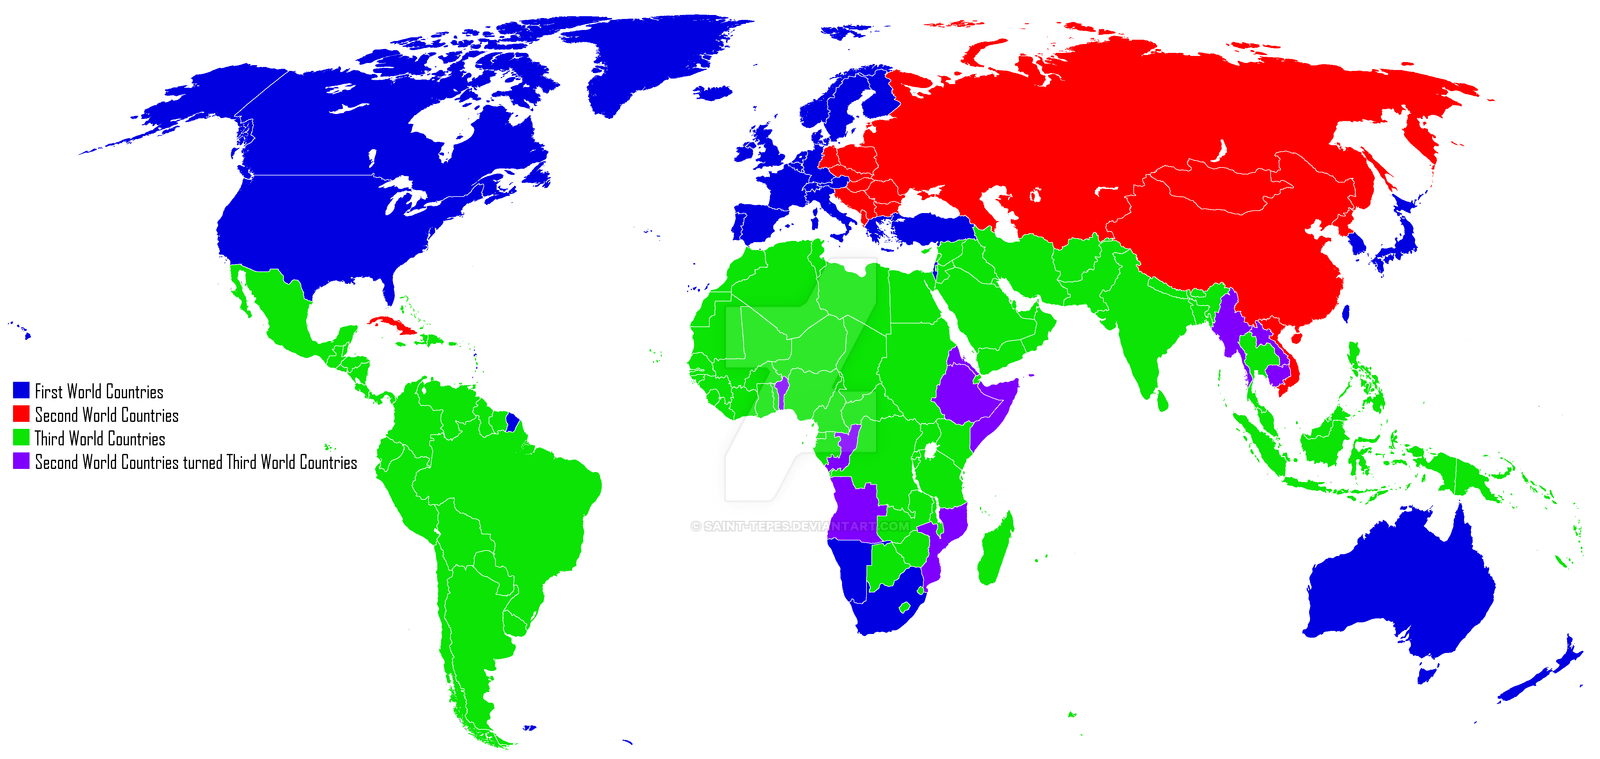 1st 2nd 3rd world countries map with Cold War Map First World Second World 3rd World 385378390 on Foreign Aid additionally Colonial Africa 159346737 together with First World Second World Third World Cold War 385378390 further These Are The 10 Best States To Live In America 123067 further Basic Map Skills Map.